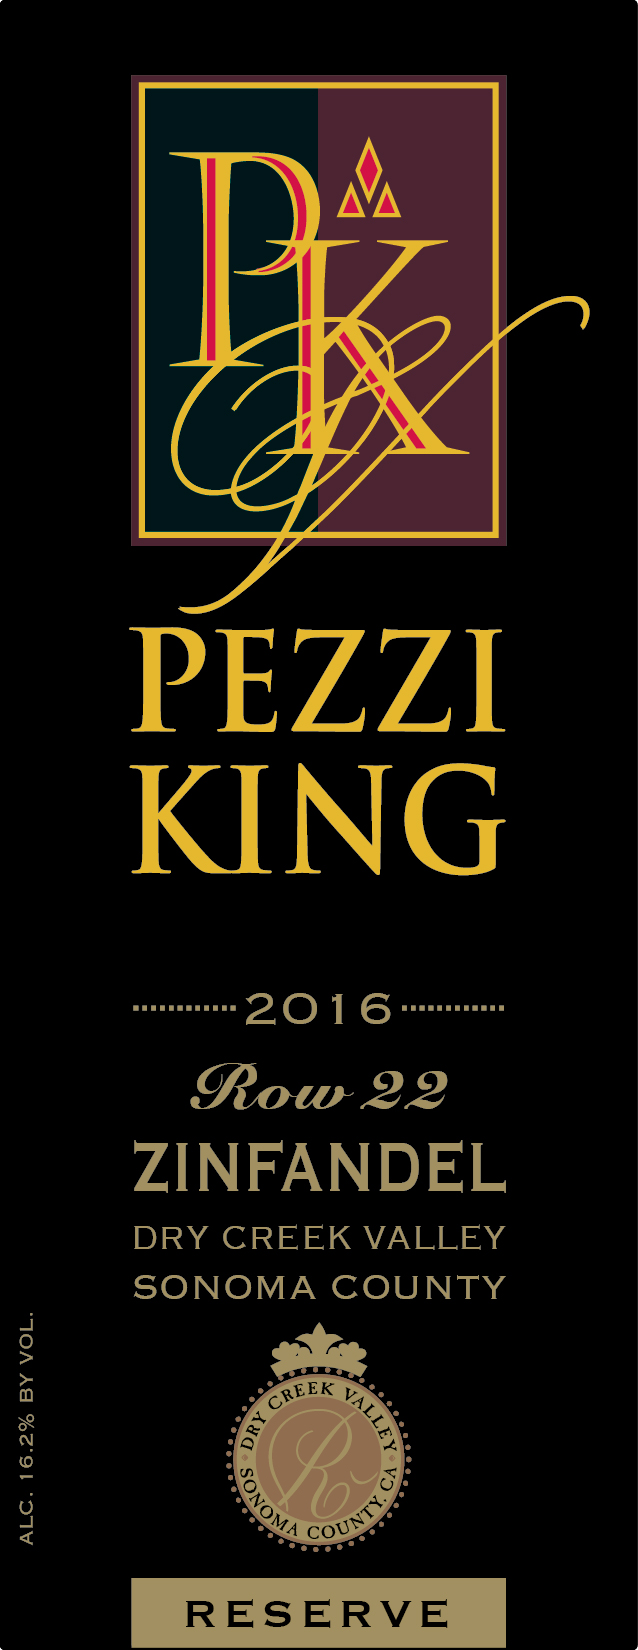 2016 Pezzi King Zinfandel, Row 22 Reserve MAIN